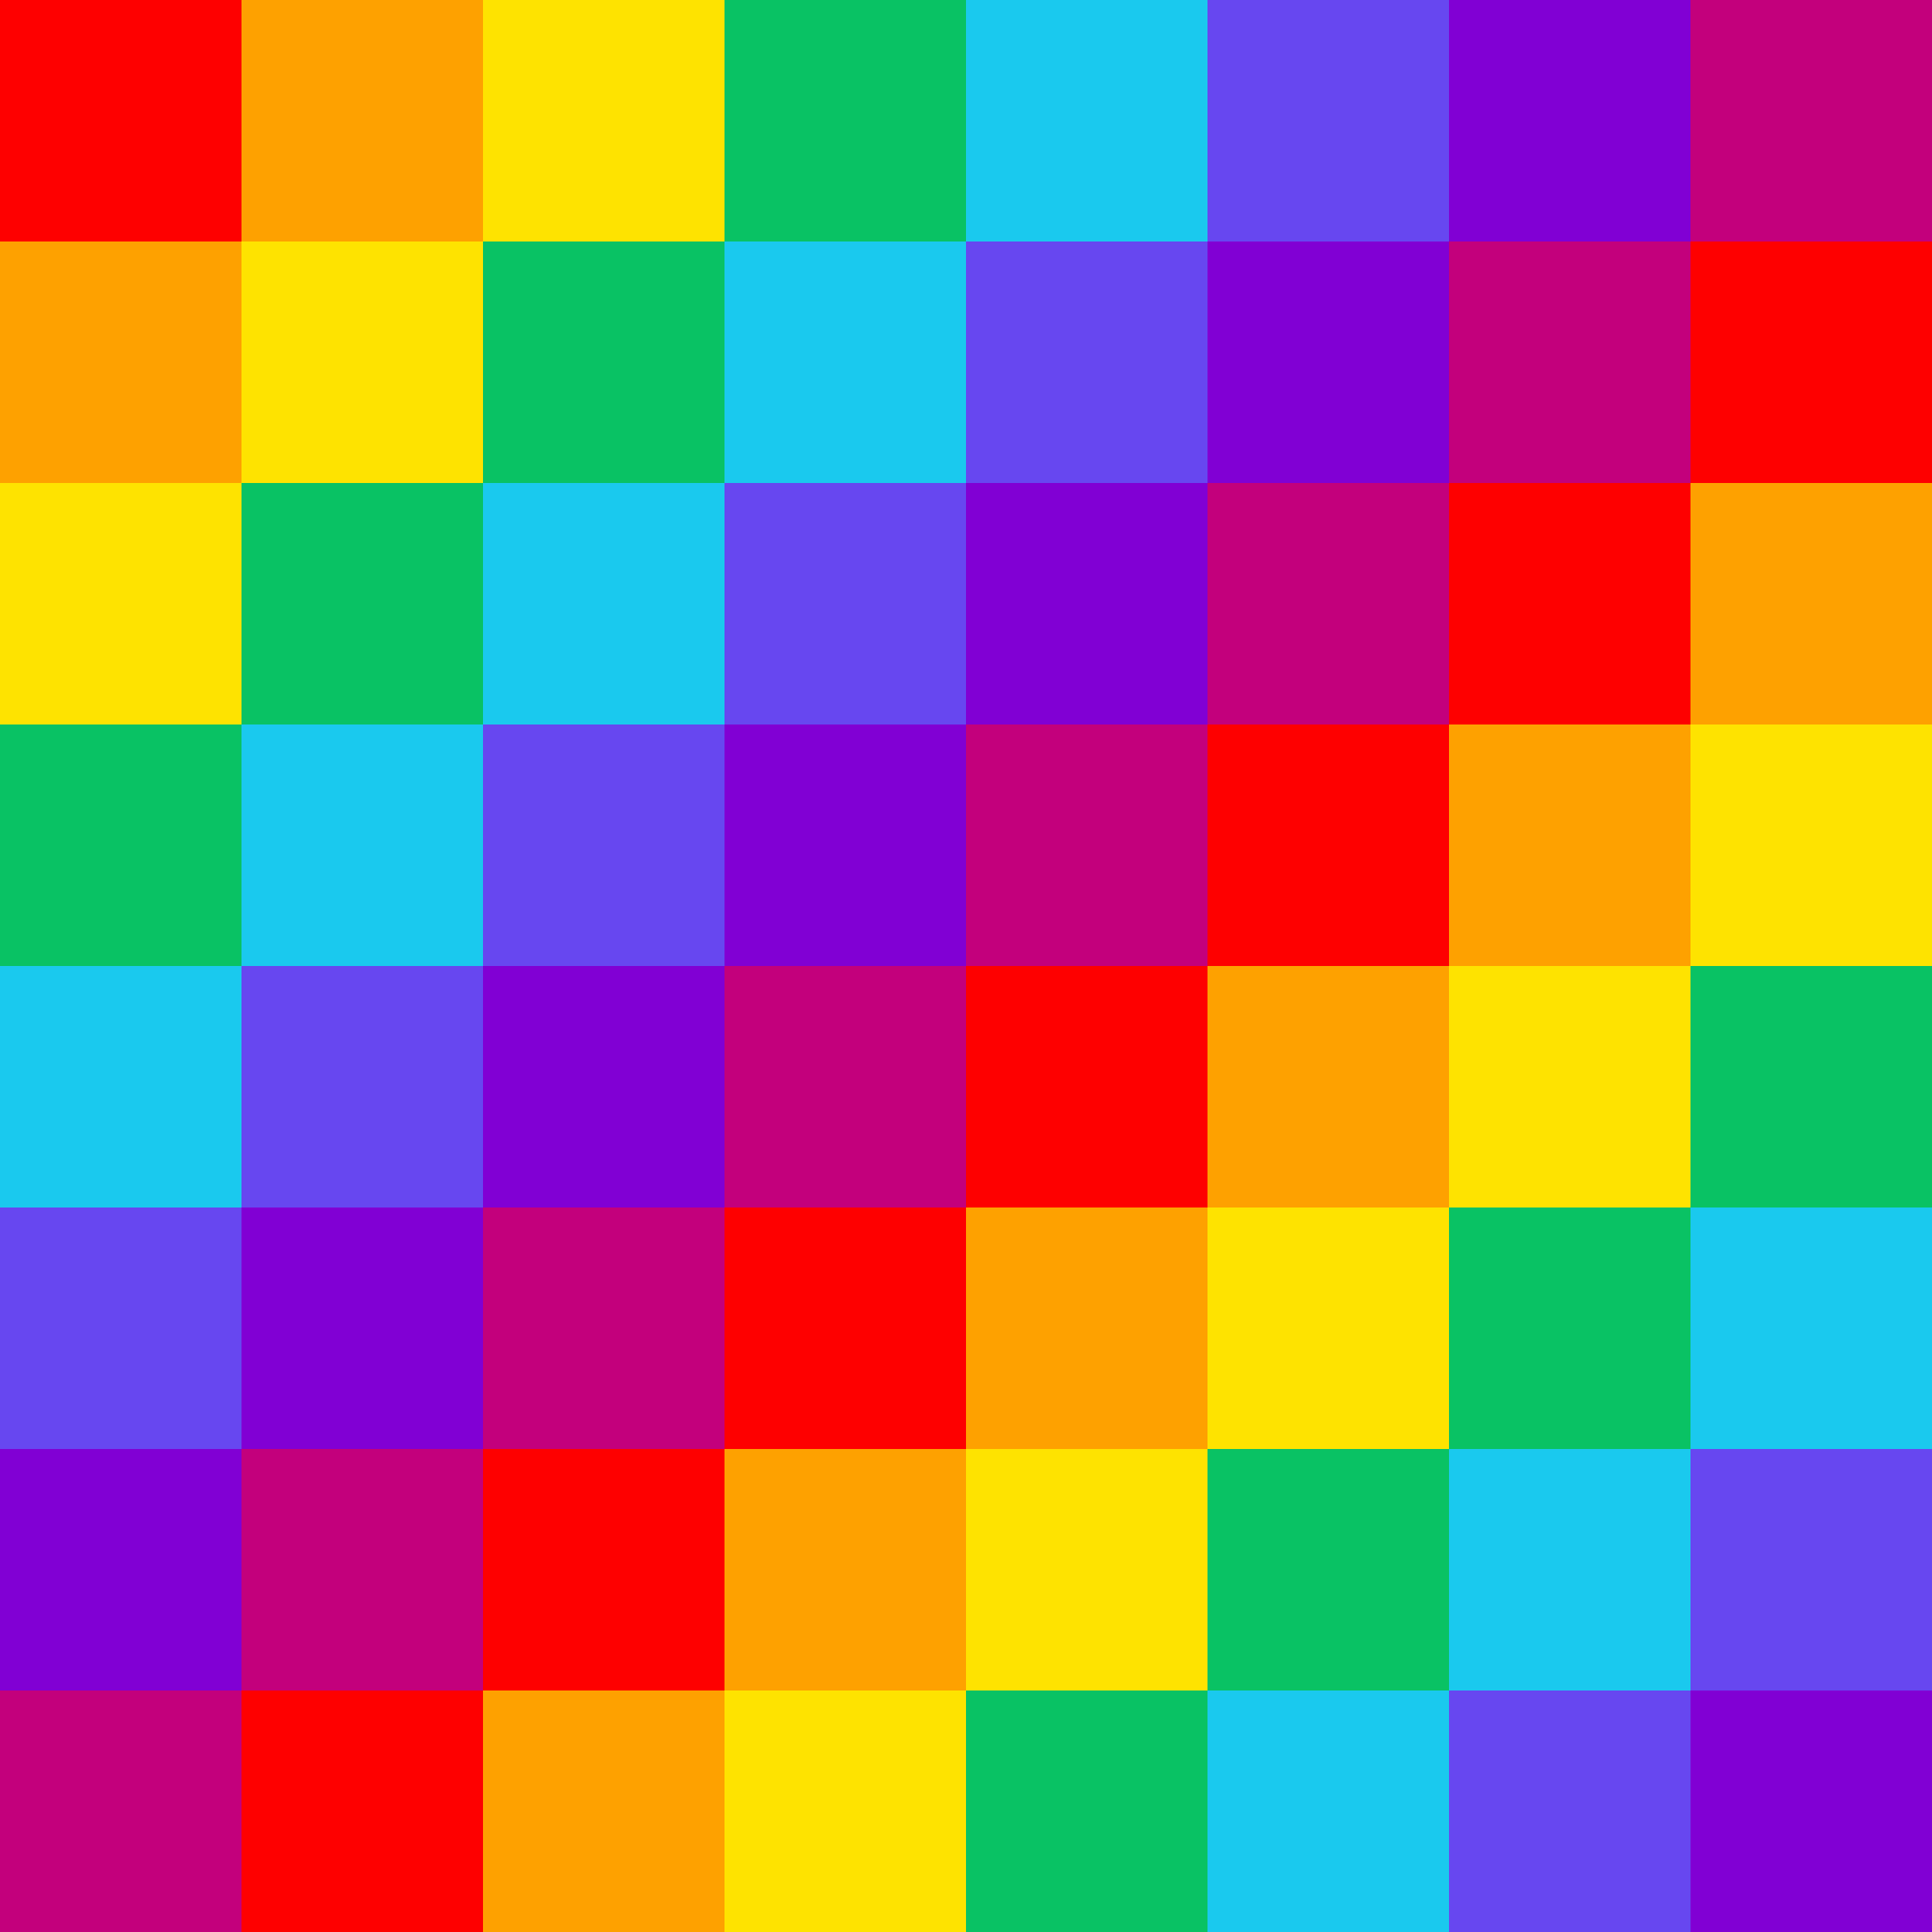 Rainbow checker pattern by phidari